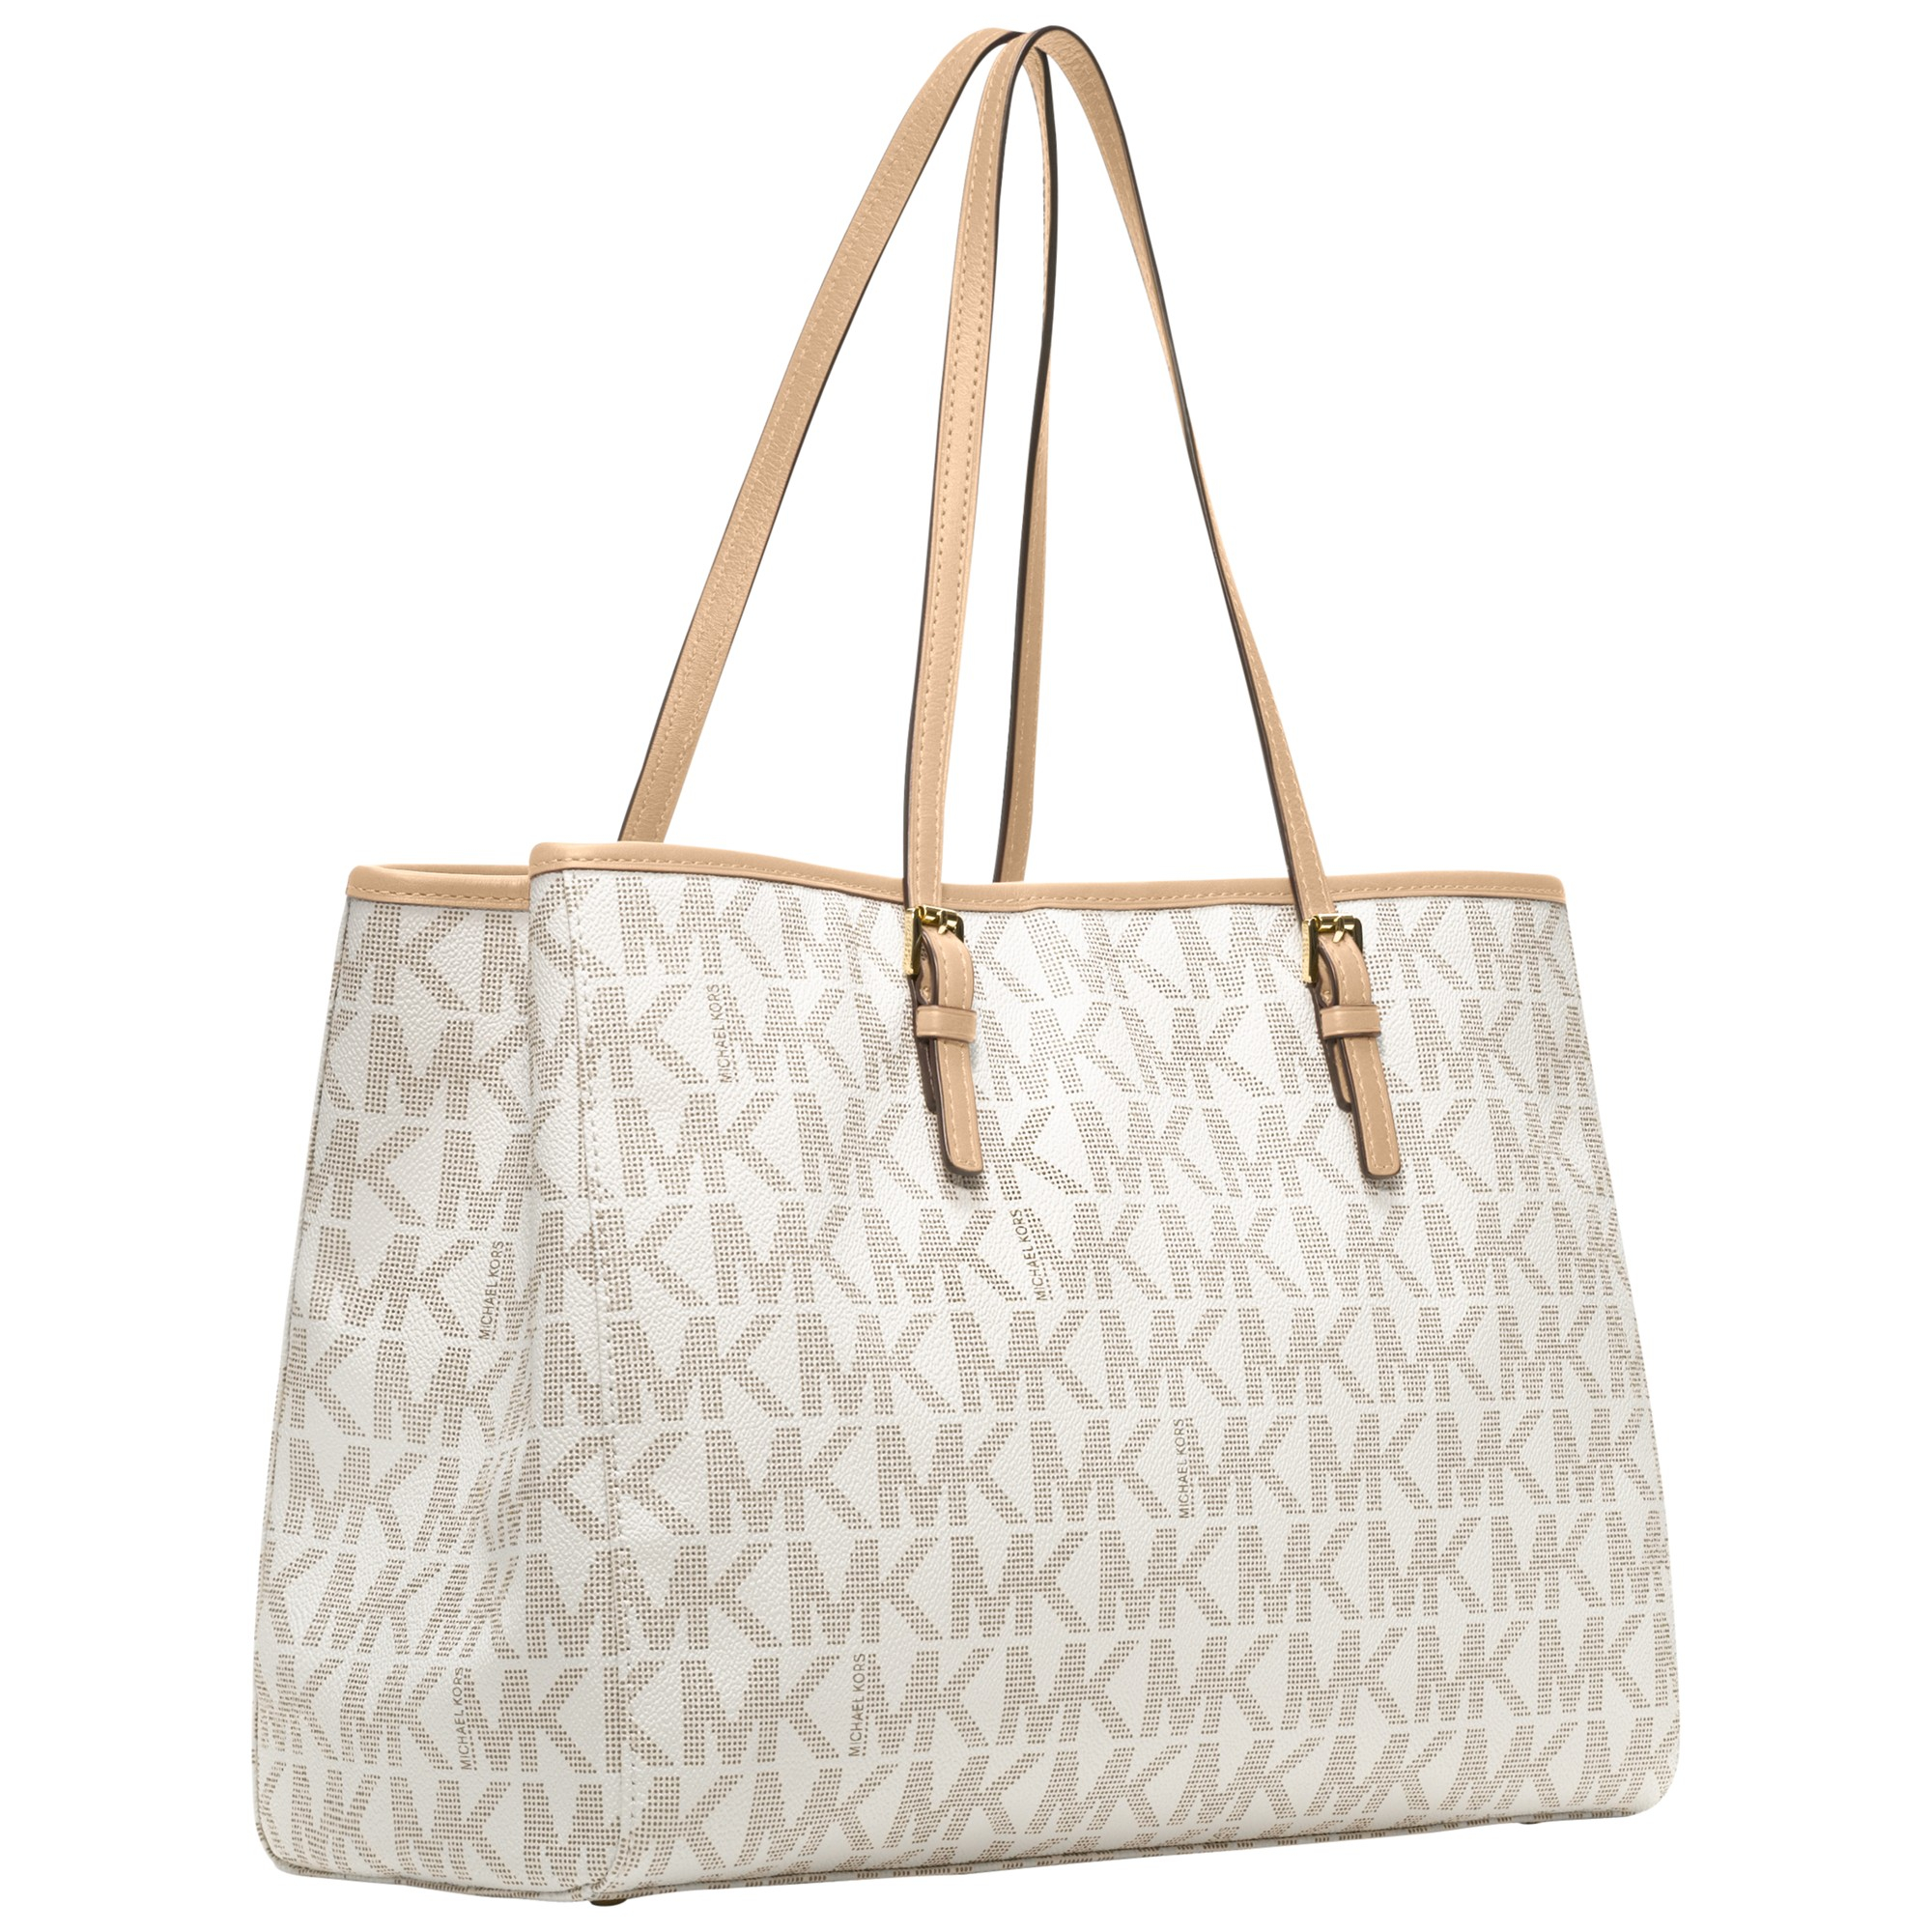 MICHAEL Michael Kors Jet Set Large Eastwest Tote Bag in Vanilla (White)